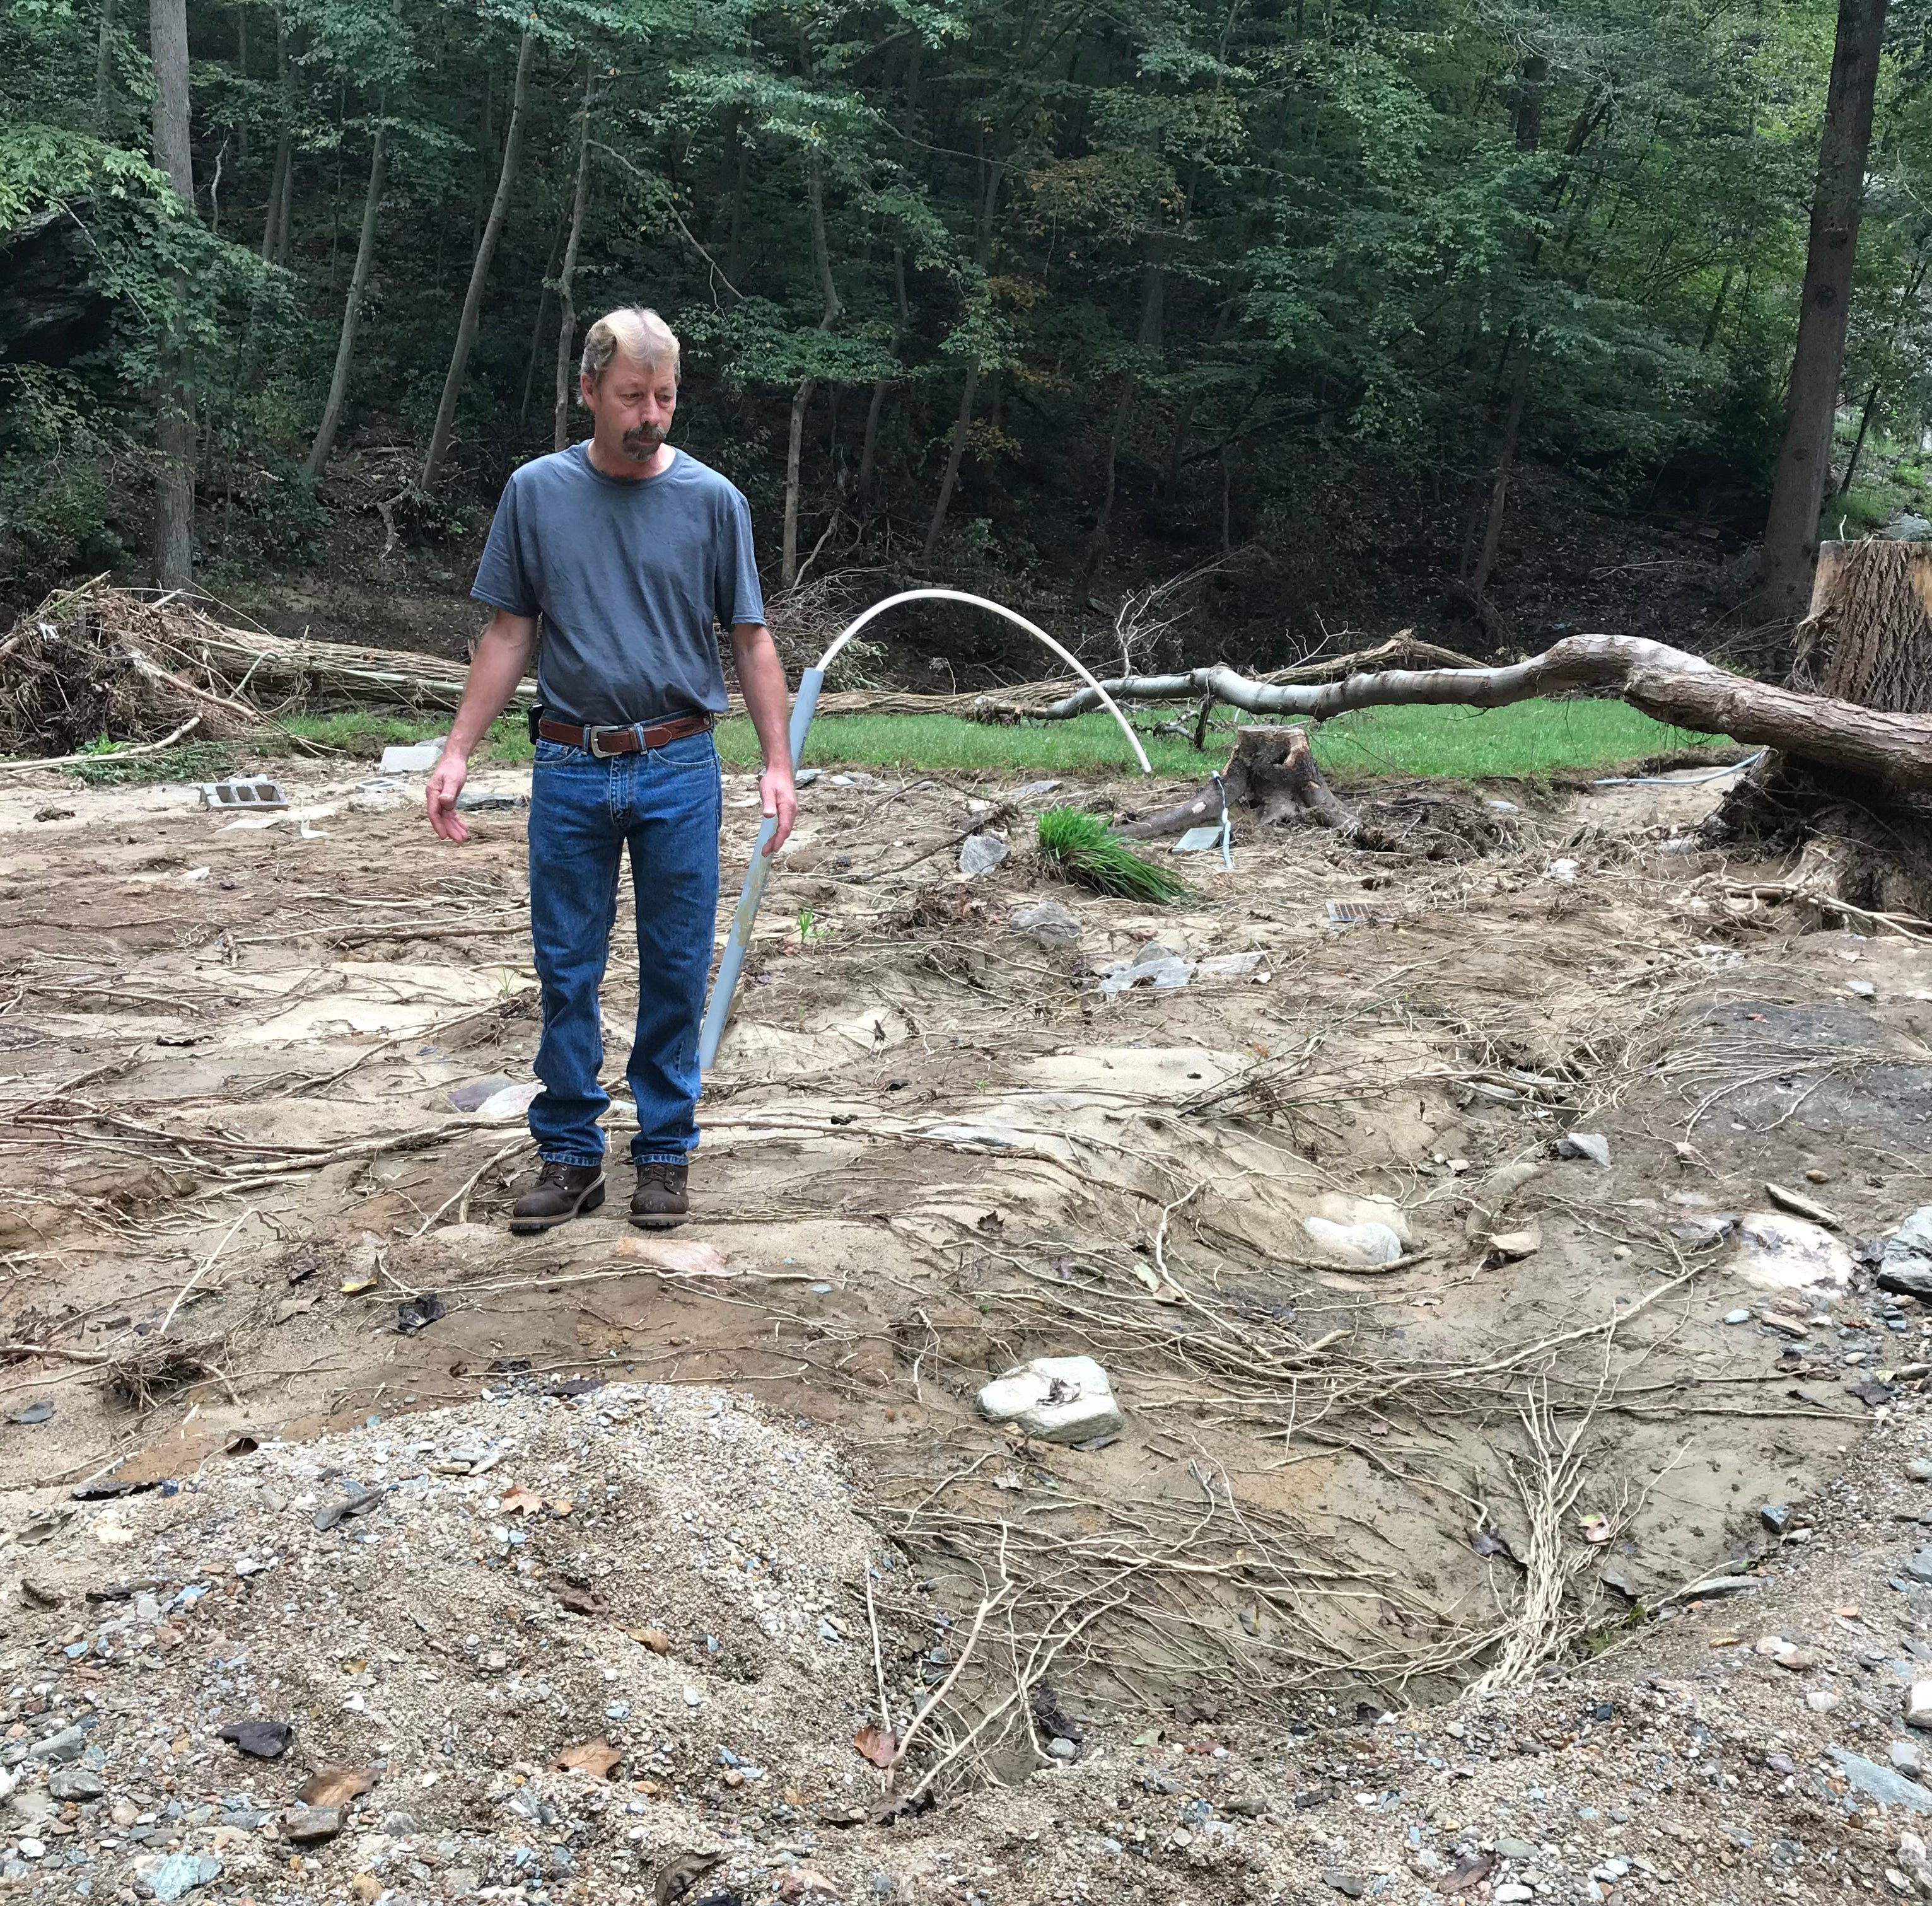 'This was my house': Weeks later, York County flood victims cope with losing everything